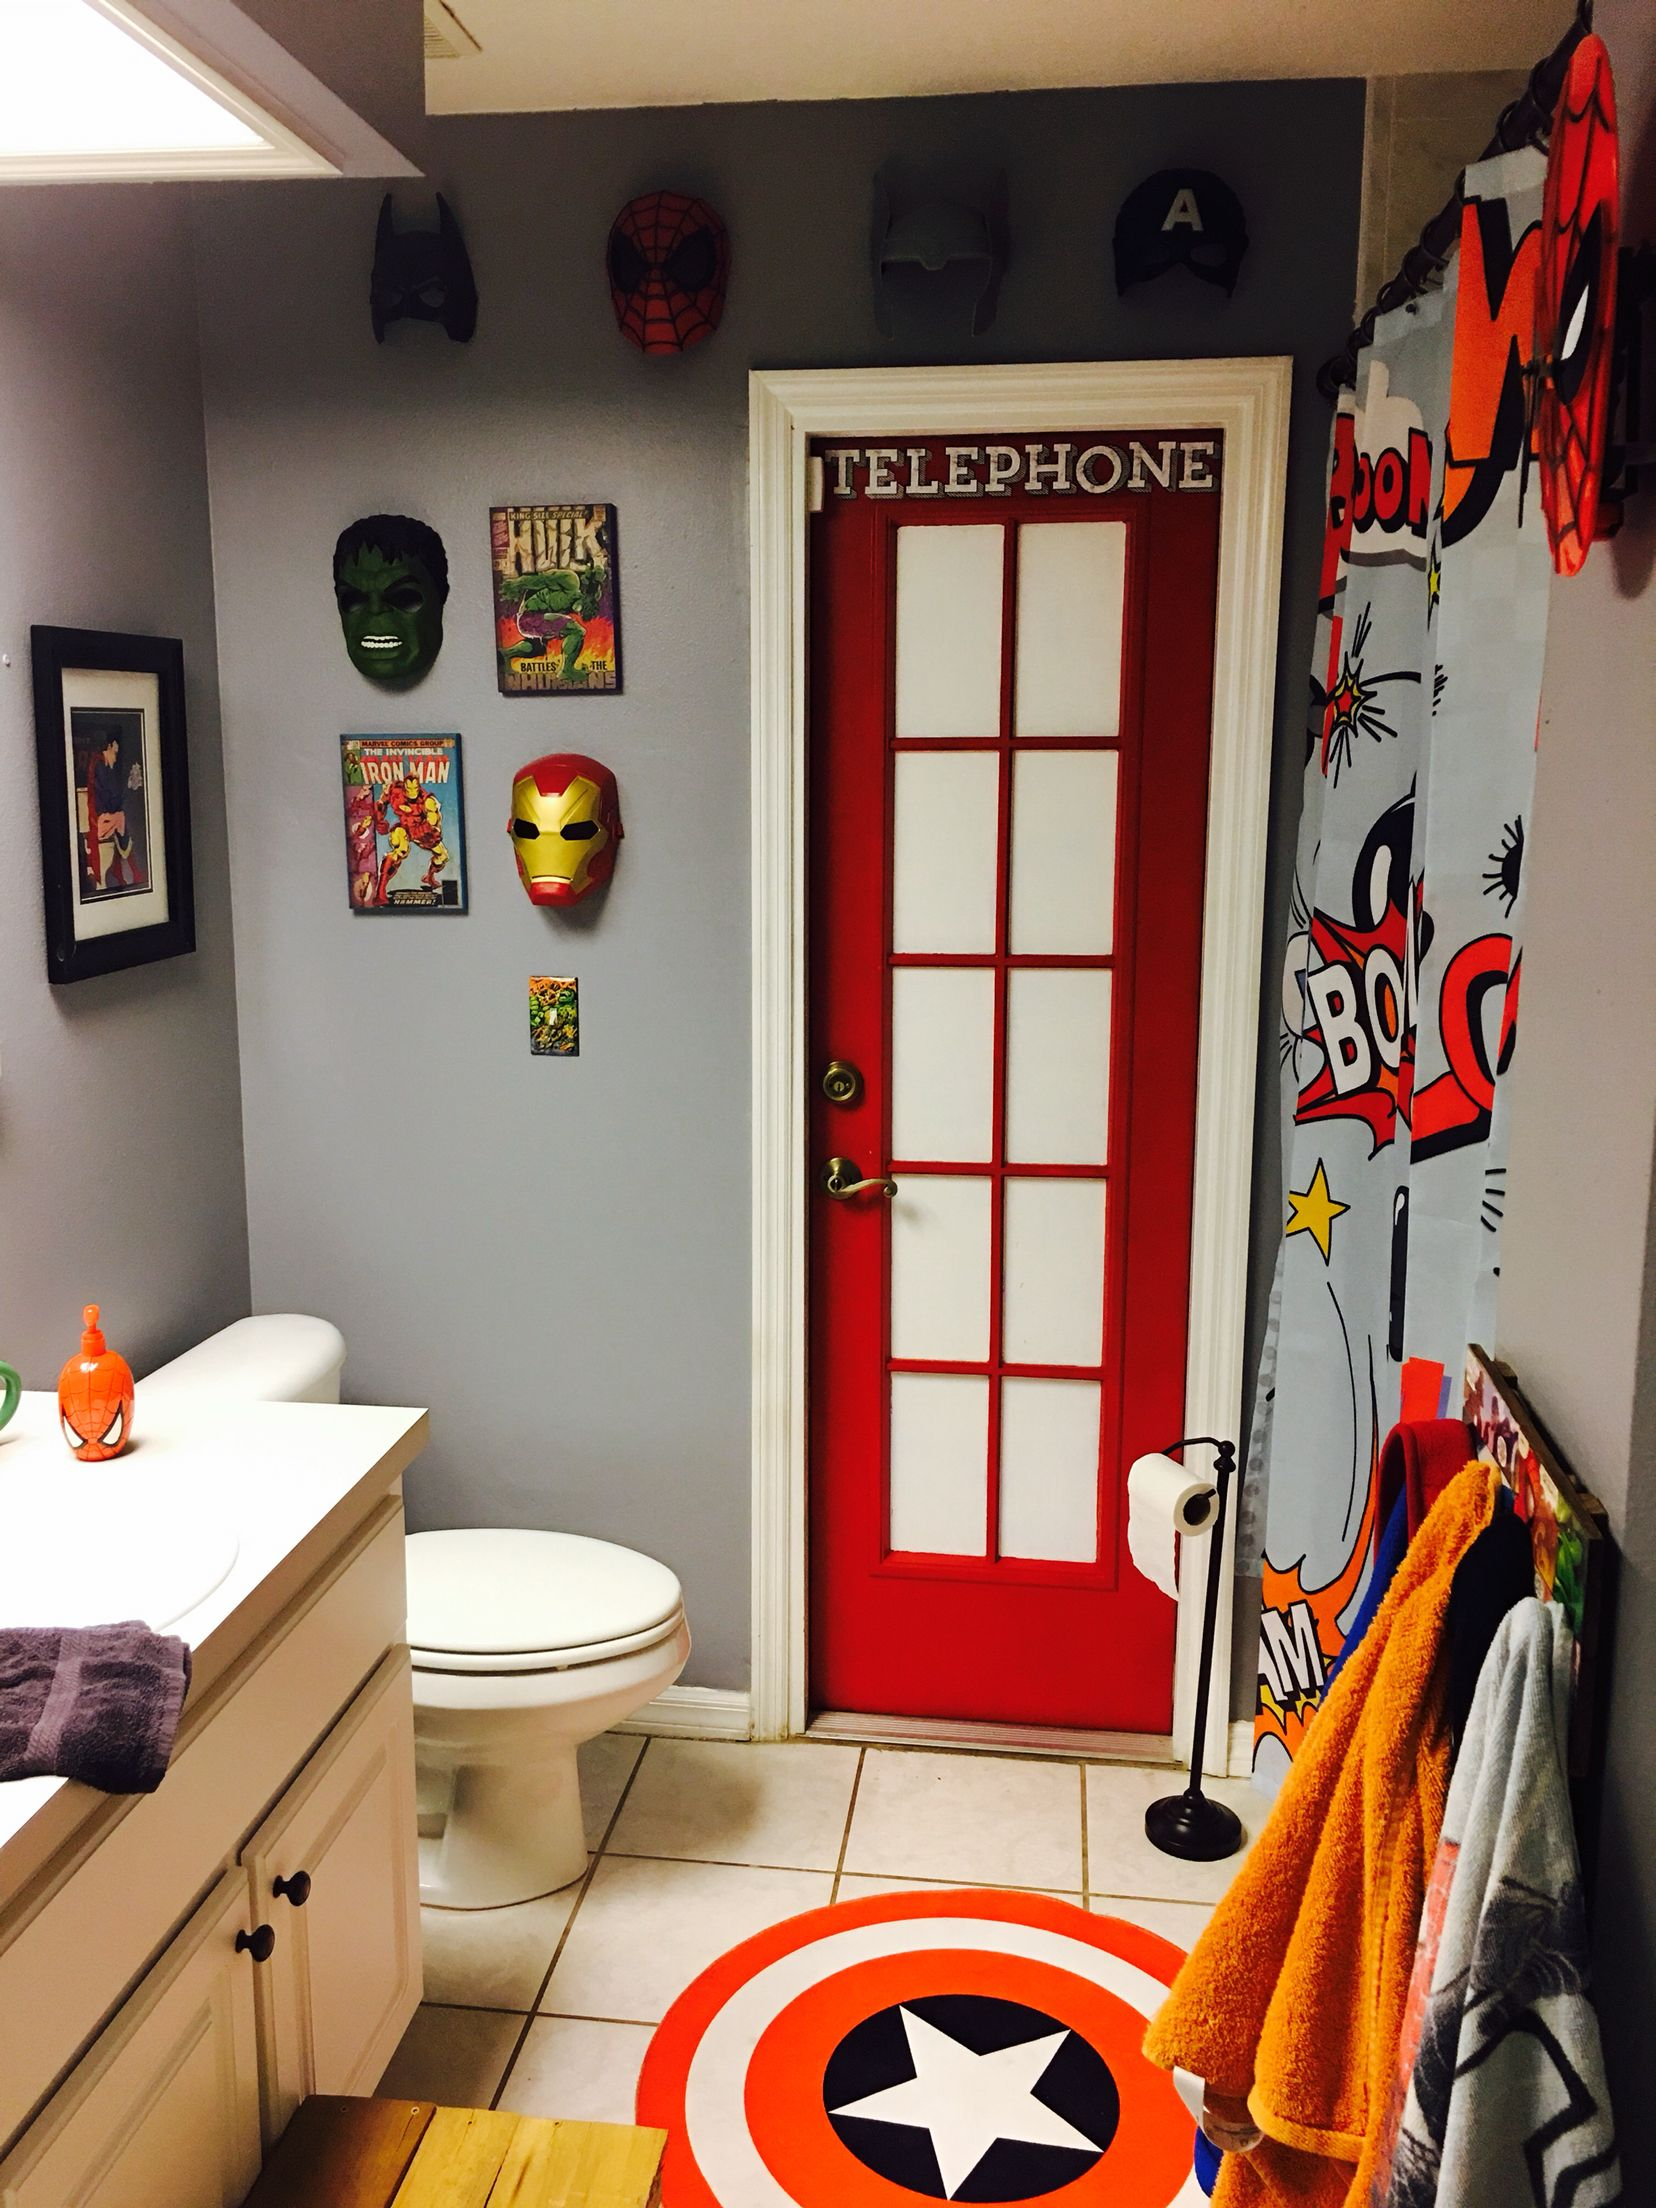 Superman S Phone Booth For A Superhero Bathroom Kids Bathroom Design Boys Bathroom Decor Boys Bathroom Themes